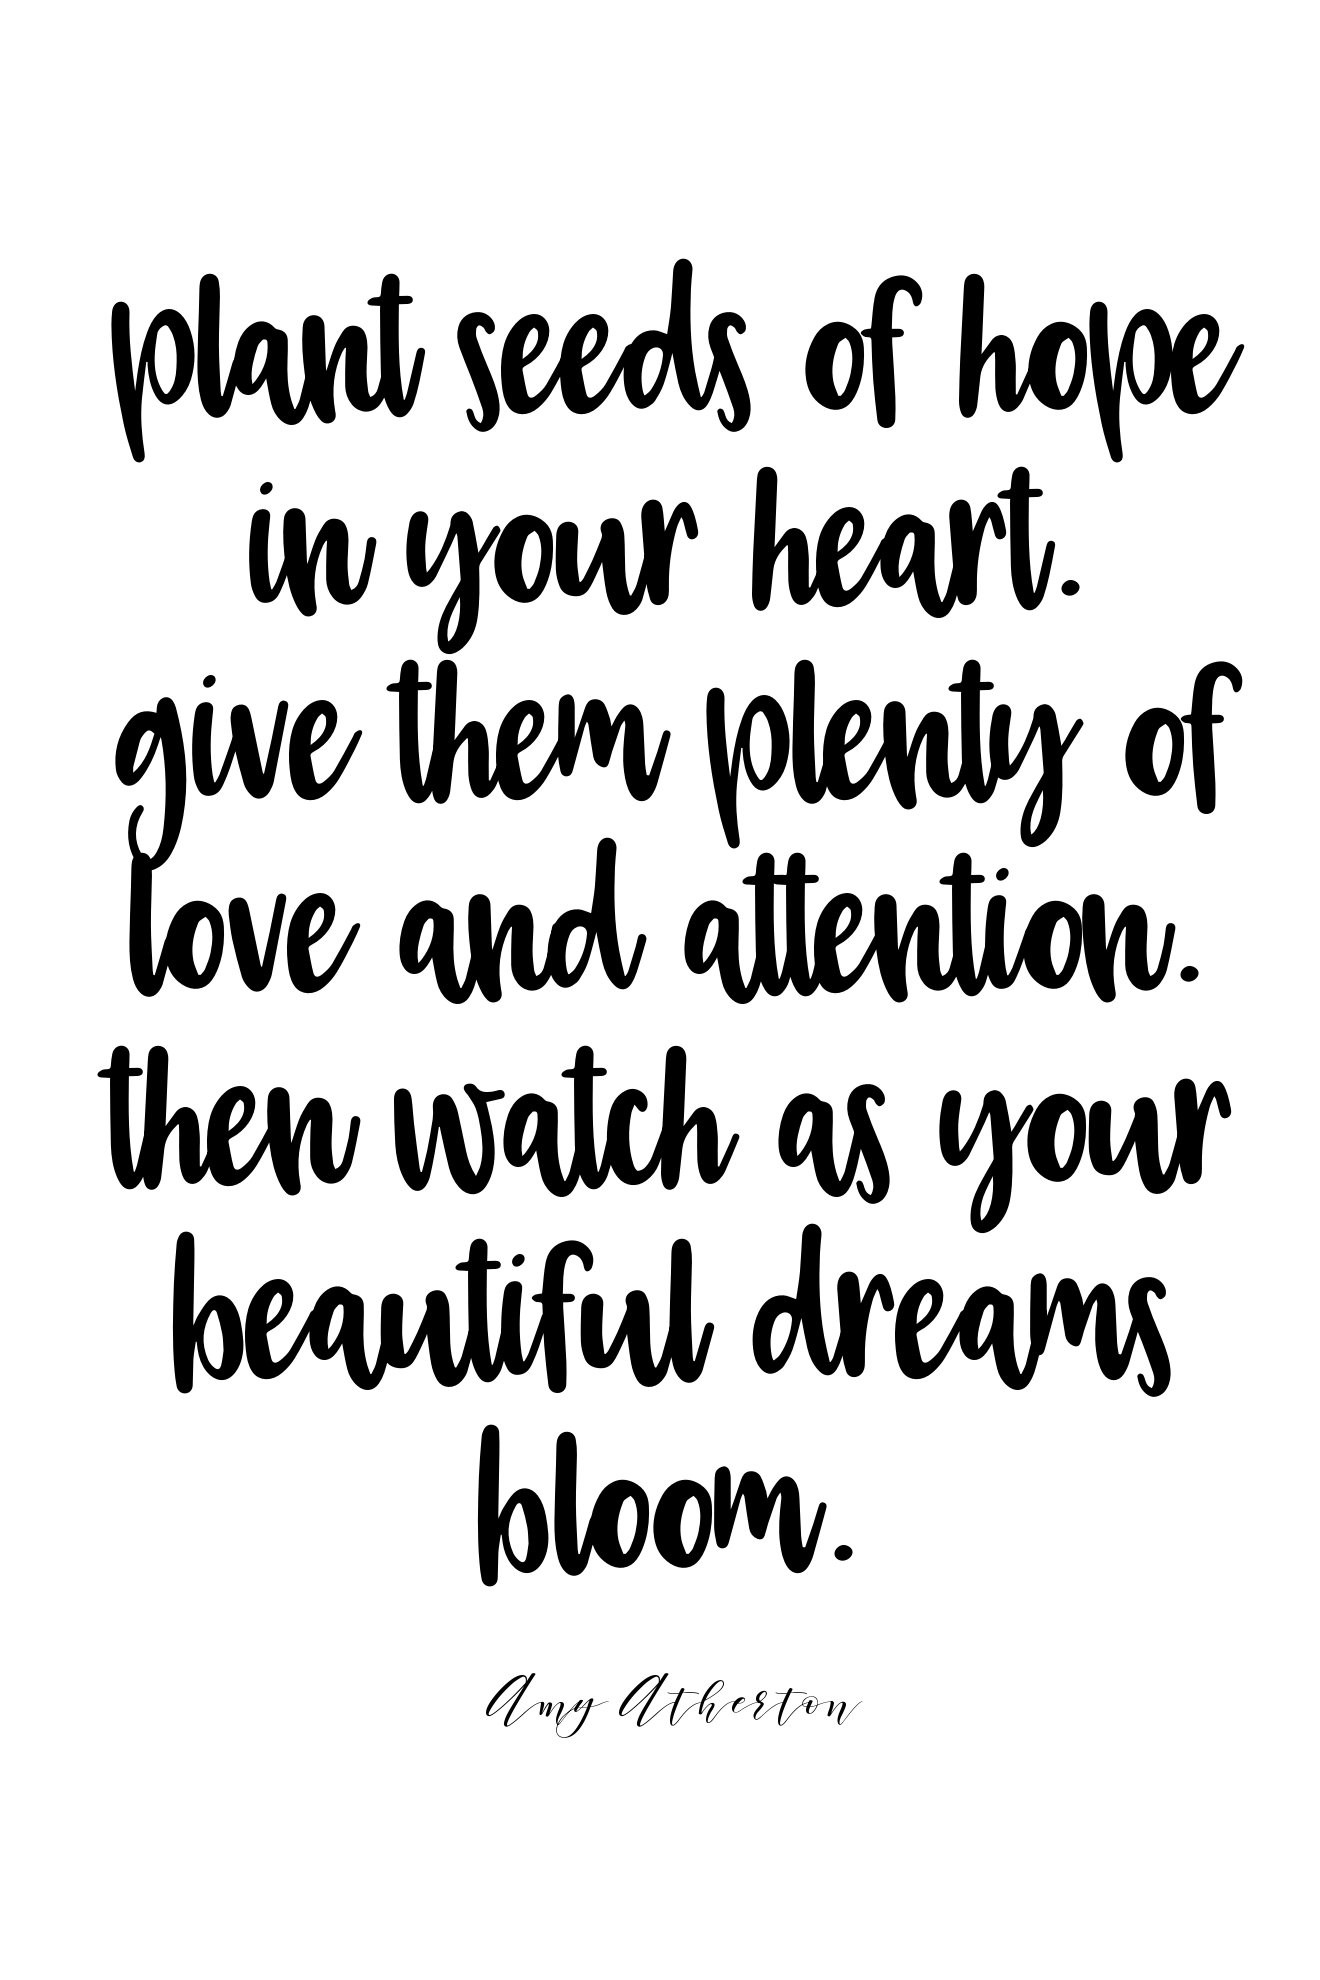 Plant seeds of hope in your heart. Give them plenty of love and attention. Then watch are your beautiful dreams bloom. @amybakeshealthy